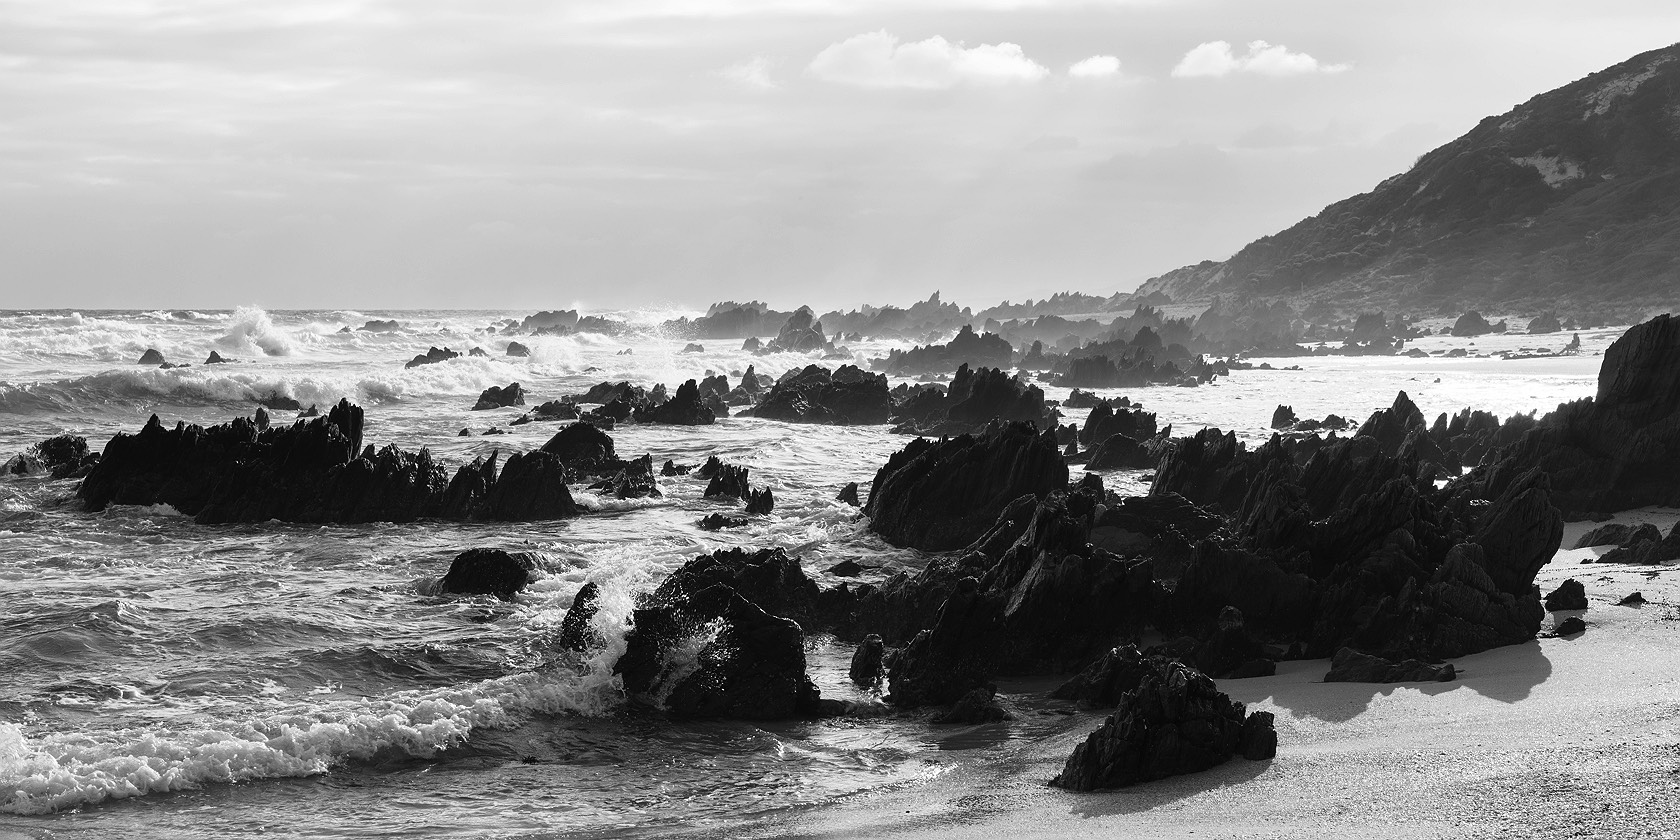 12_hammersley-inlet-jagged-rocks-rivermouth-fitzgerald-river-np